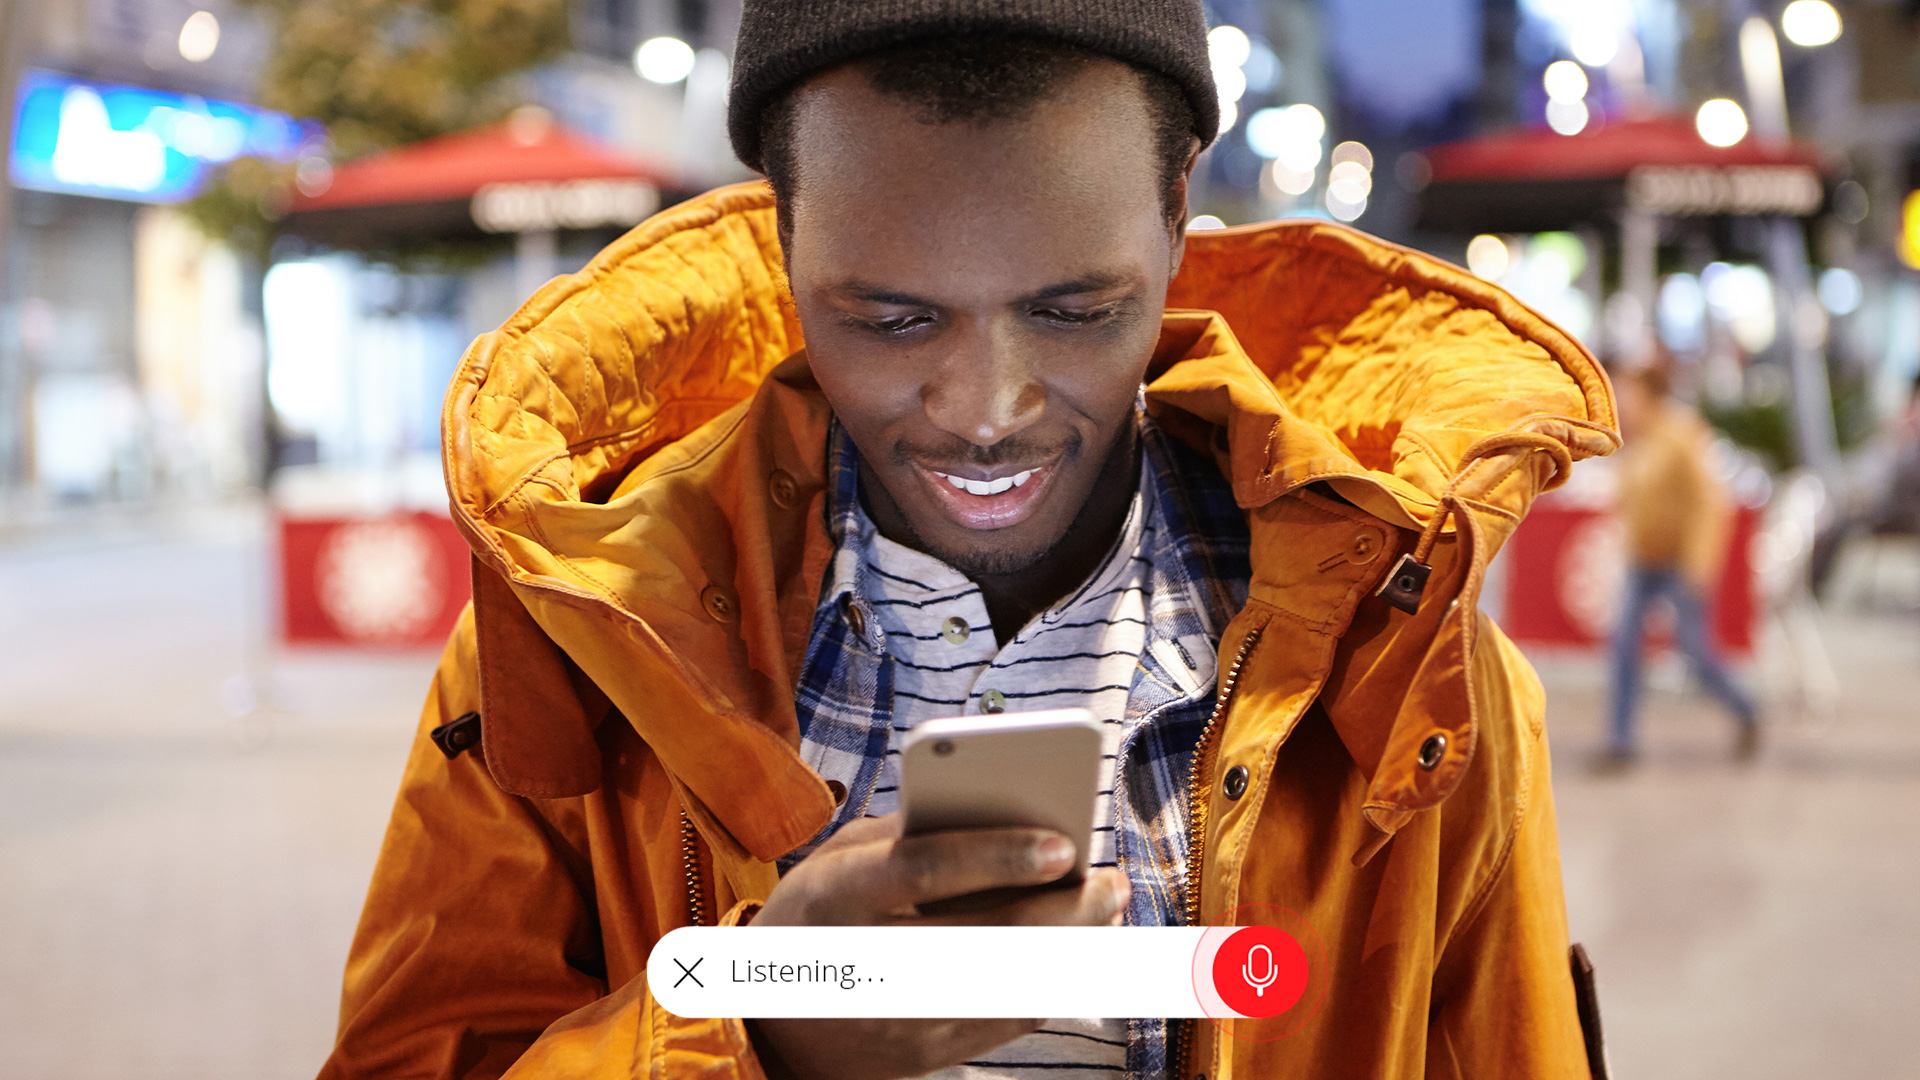 man smiling at phone using voice interface